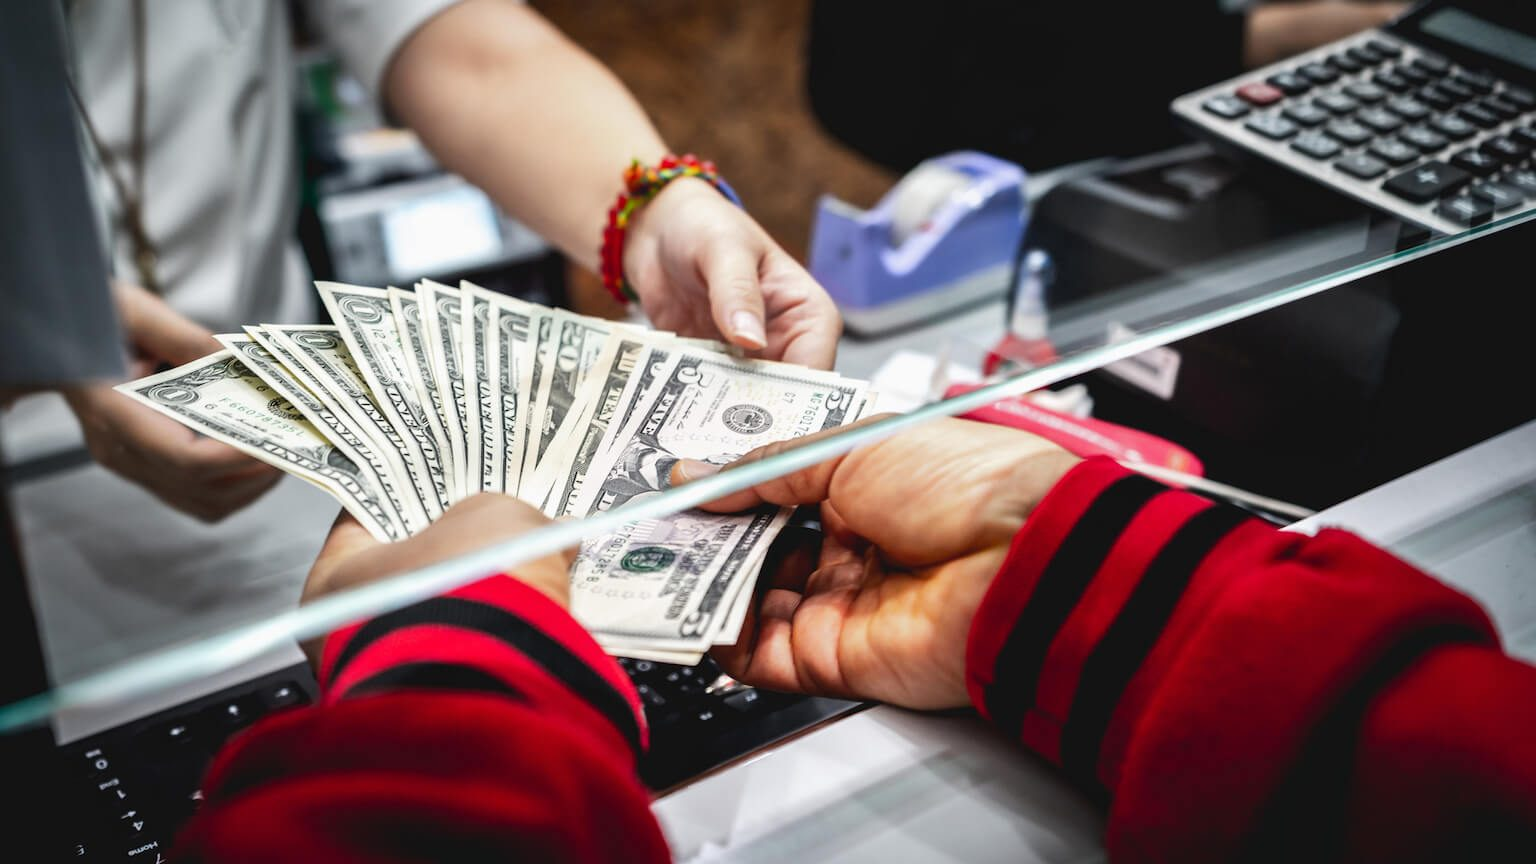 Hands receiving cash at bank teller